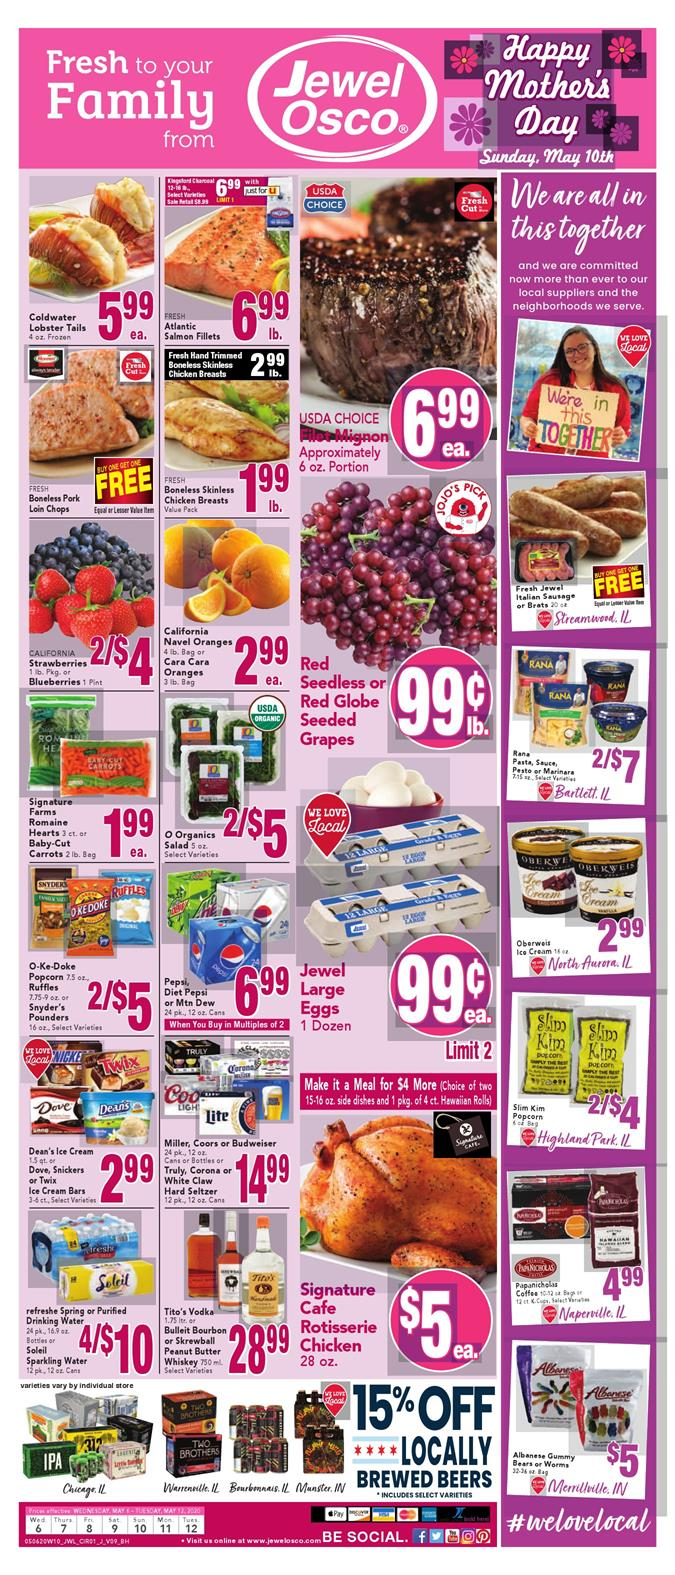 jewel osco ad may 6 2020